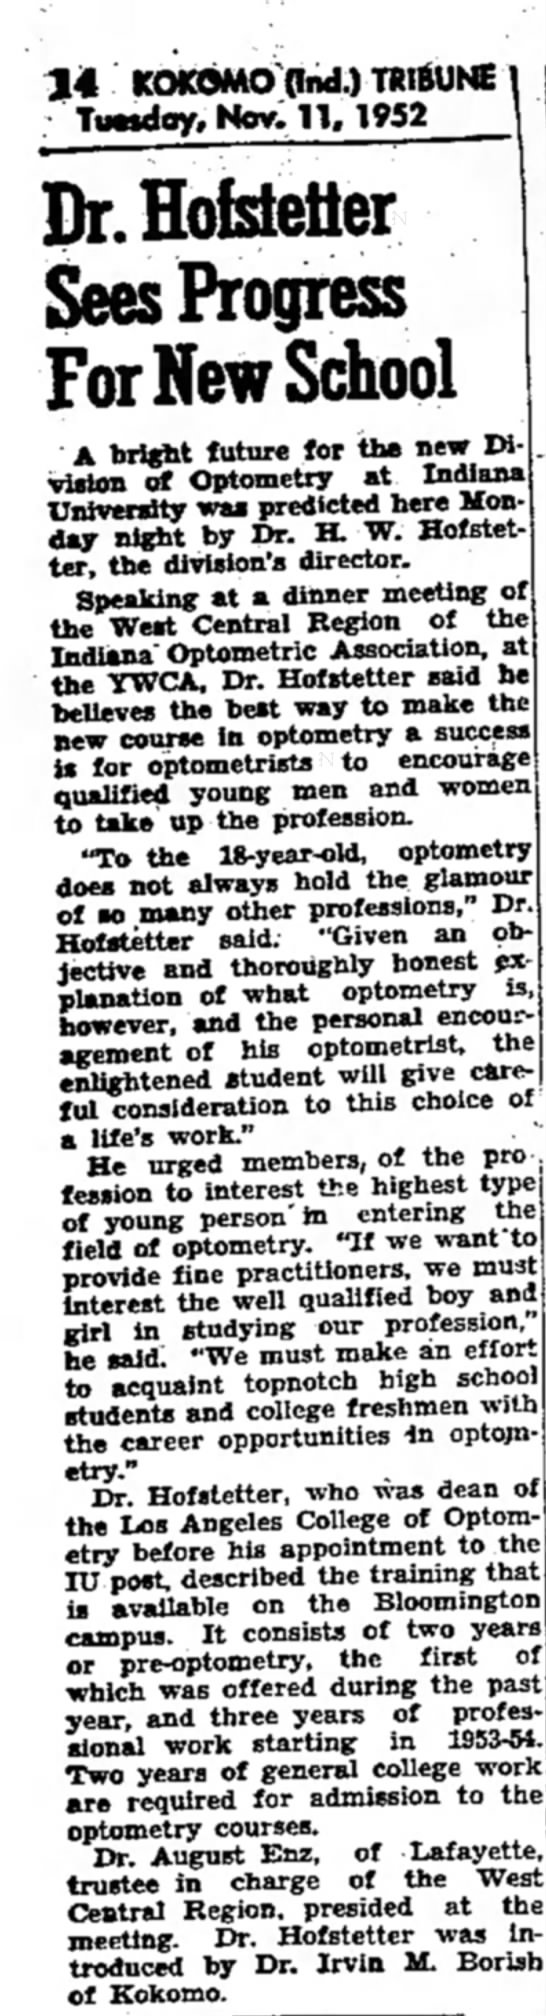 Dr. August Enz trustee in charge of West Central Region - 14 KOKOMO find.) TRIBUNE Timdoy. Nov. 11.1952...